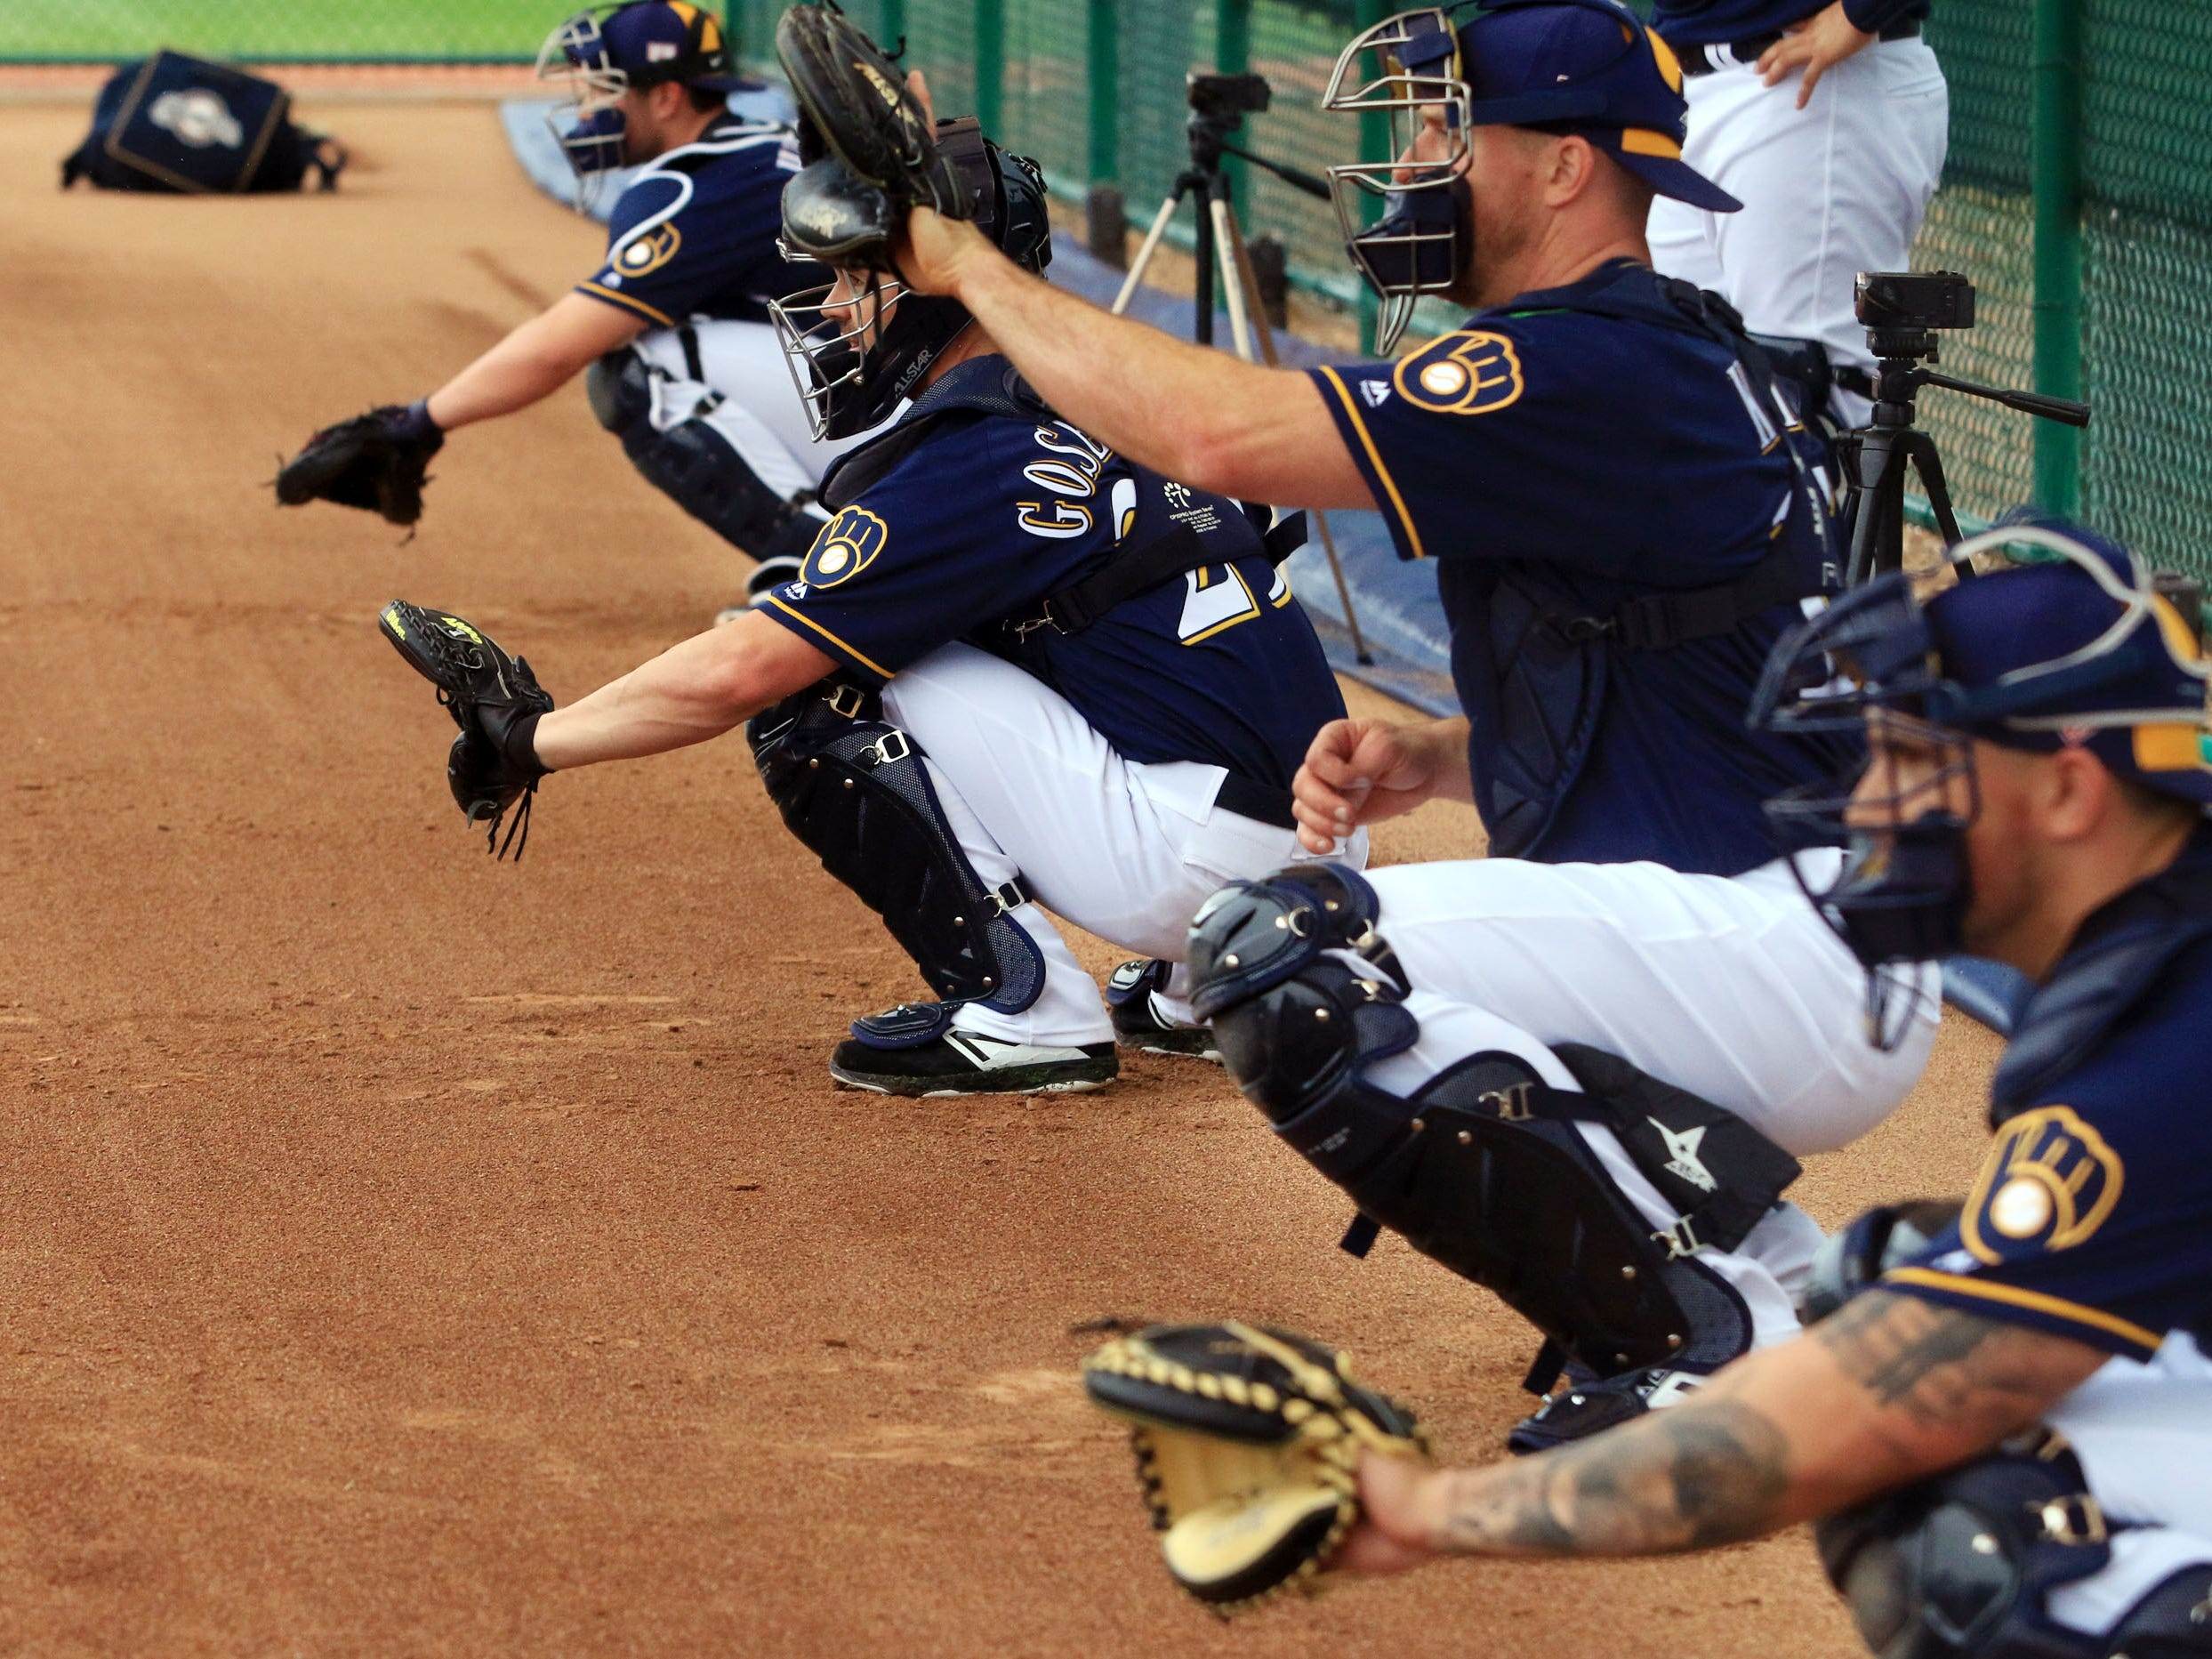 Brewers catchers get work in as pitchers go through throwing sessions on Thursday.